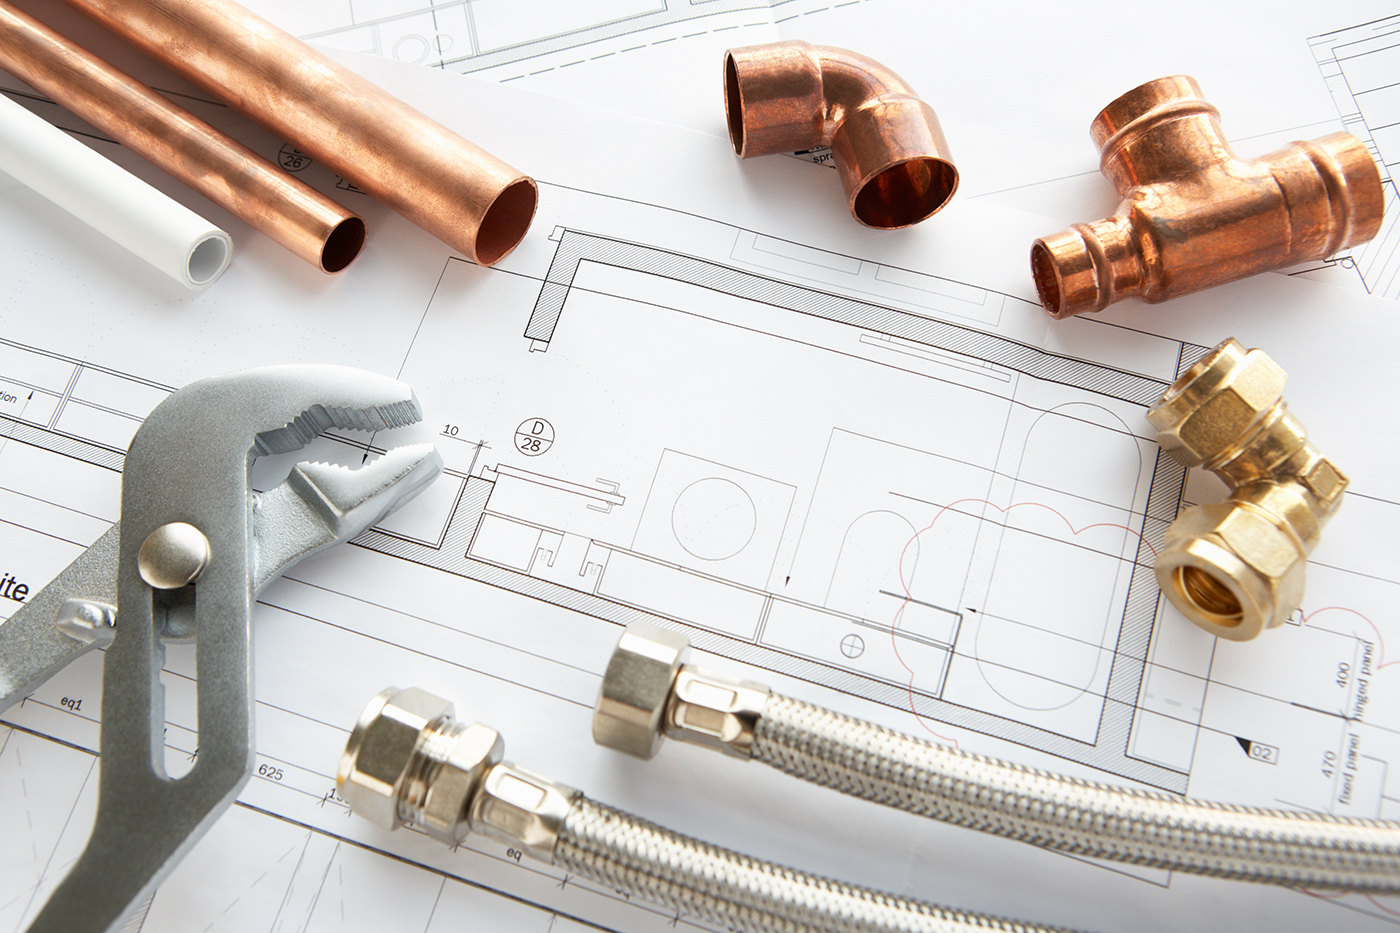 Plumbing Re-Routes and Remodels in the Greater New Orleans Area